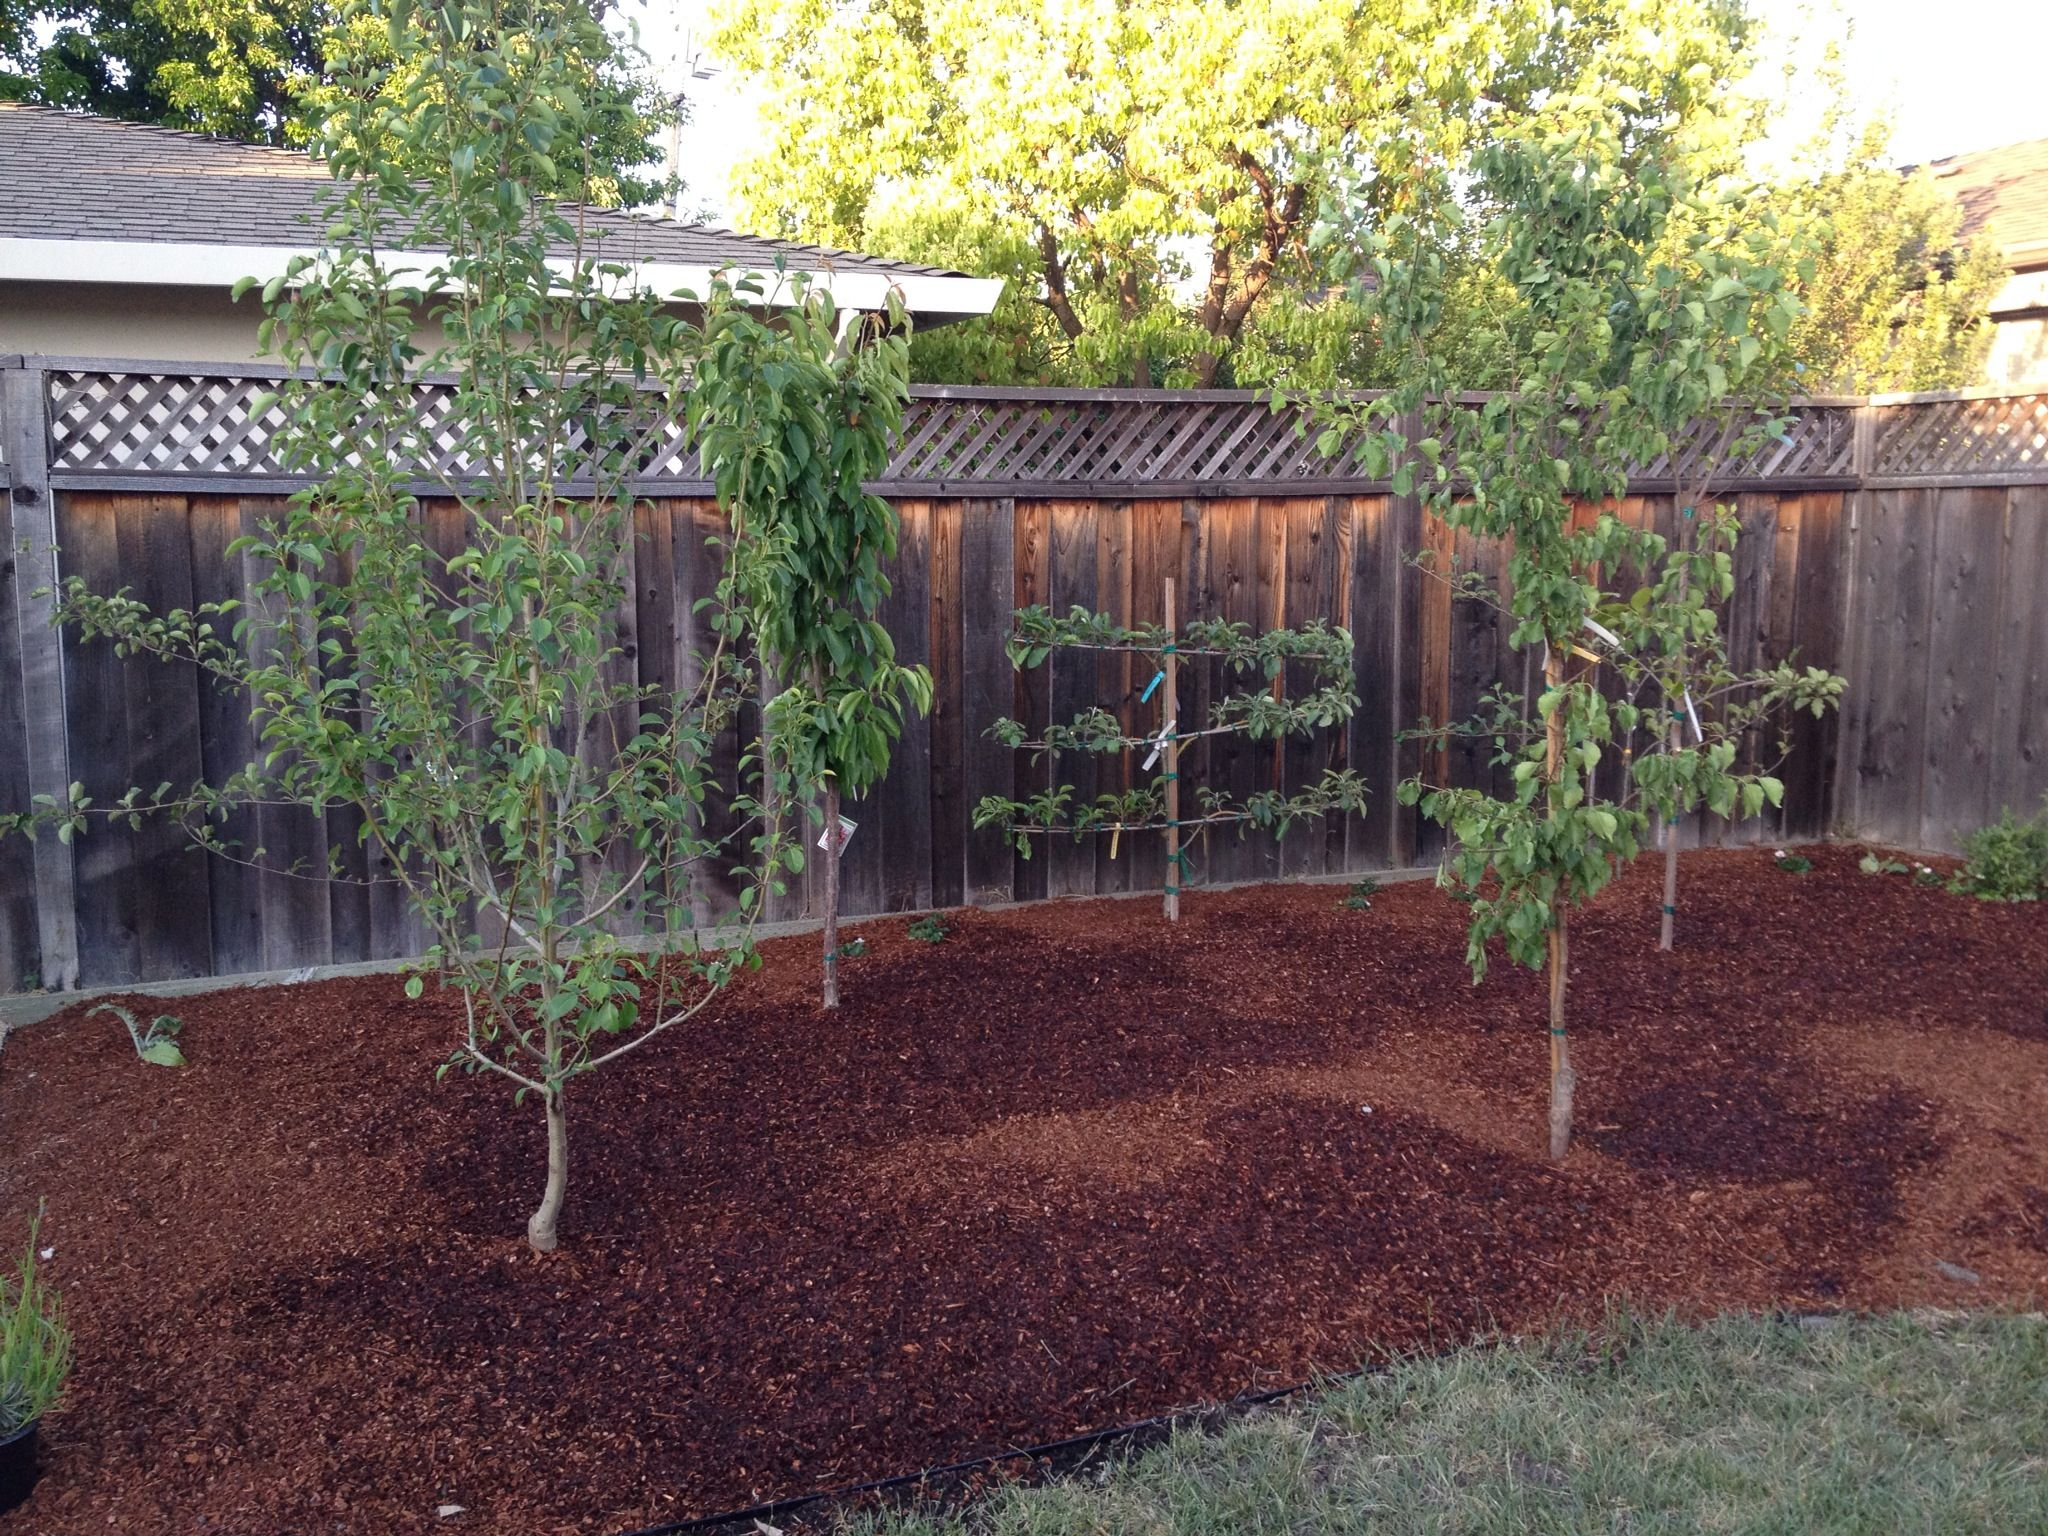 4/28/13: Fruit trees in the backyard planted | Backyard ...